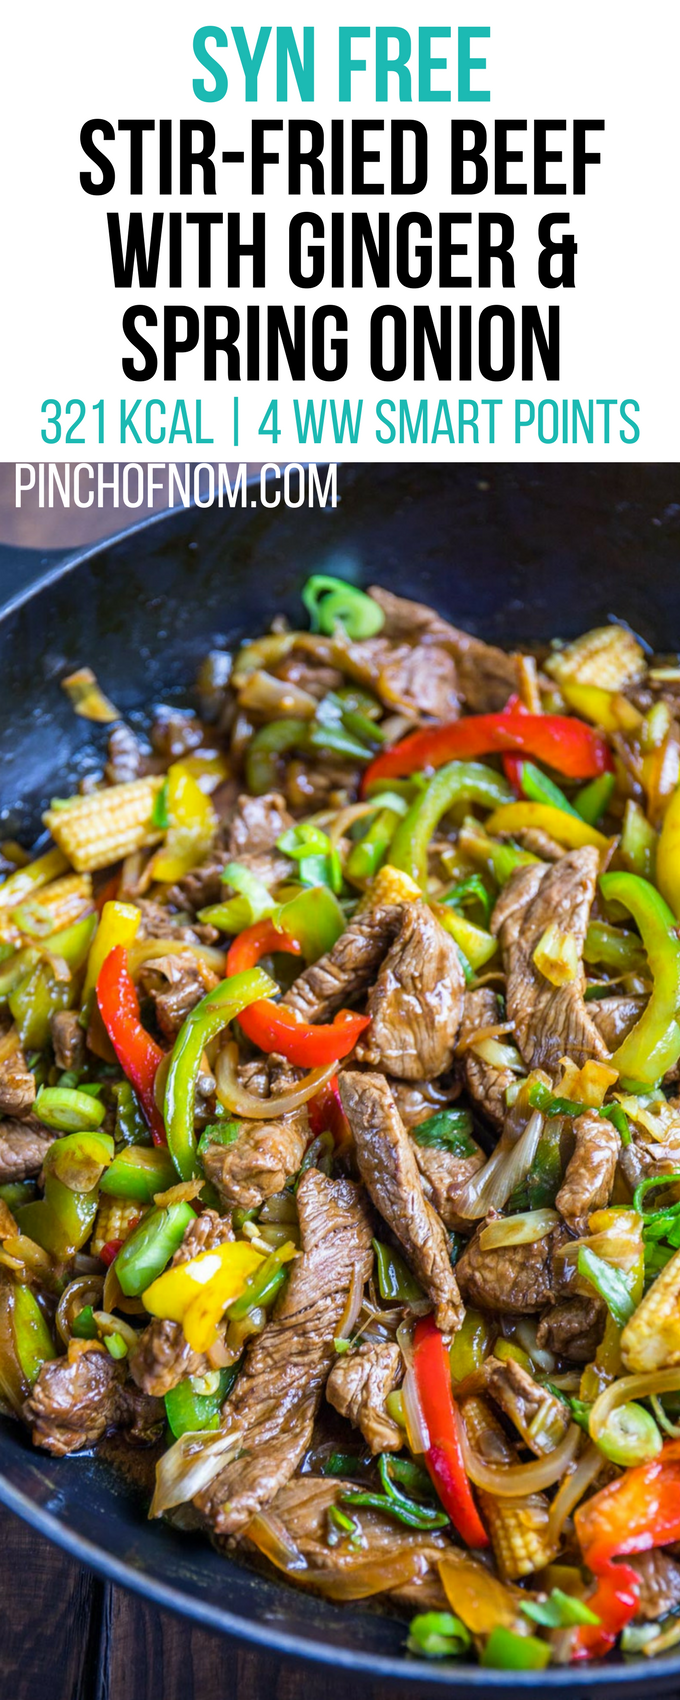 Syn Free Stir Fried Beef With Ginger And Spring Onion Pinch Of Nom Slimming W Slimming World Beef Recipes Slimming World Recipes Syn Free Slimming World Beef